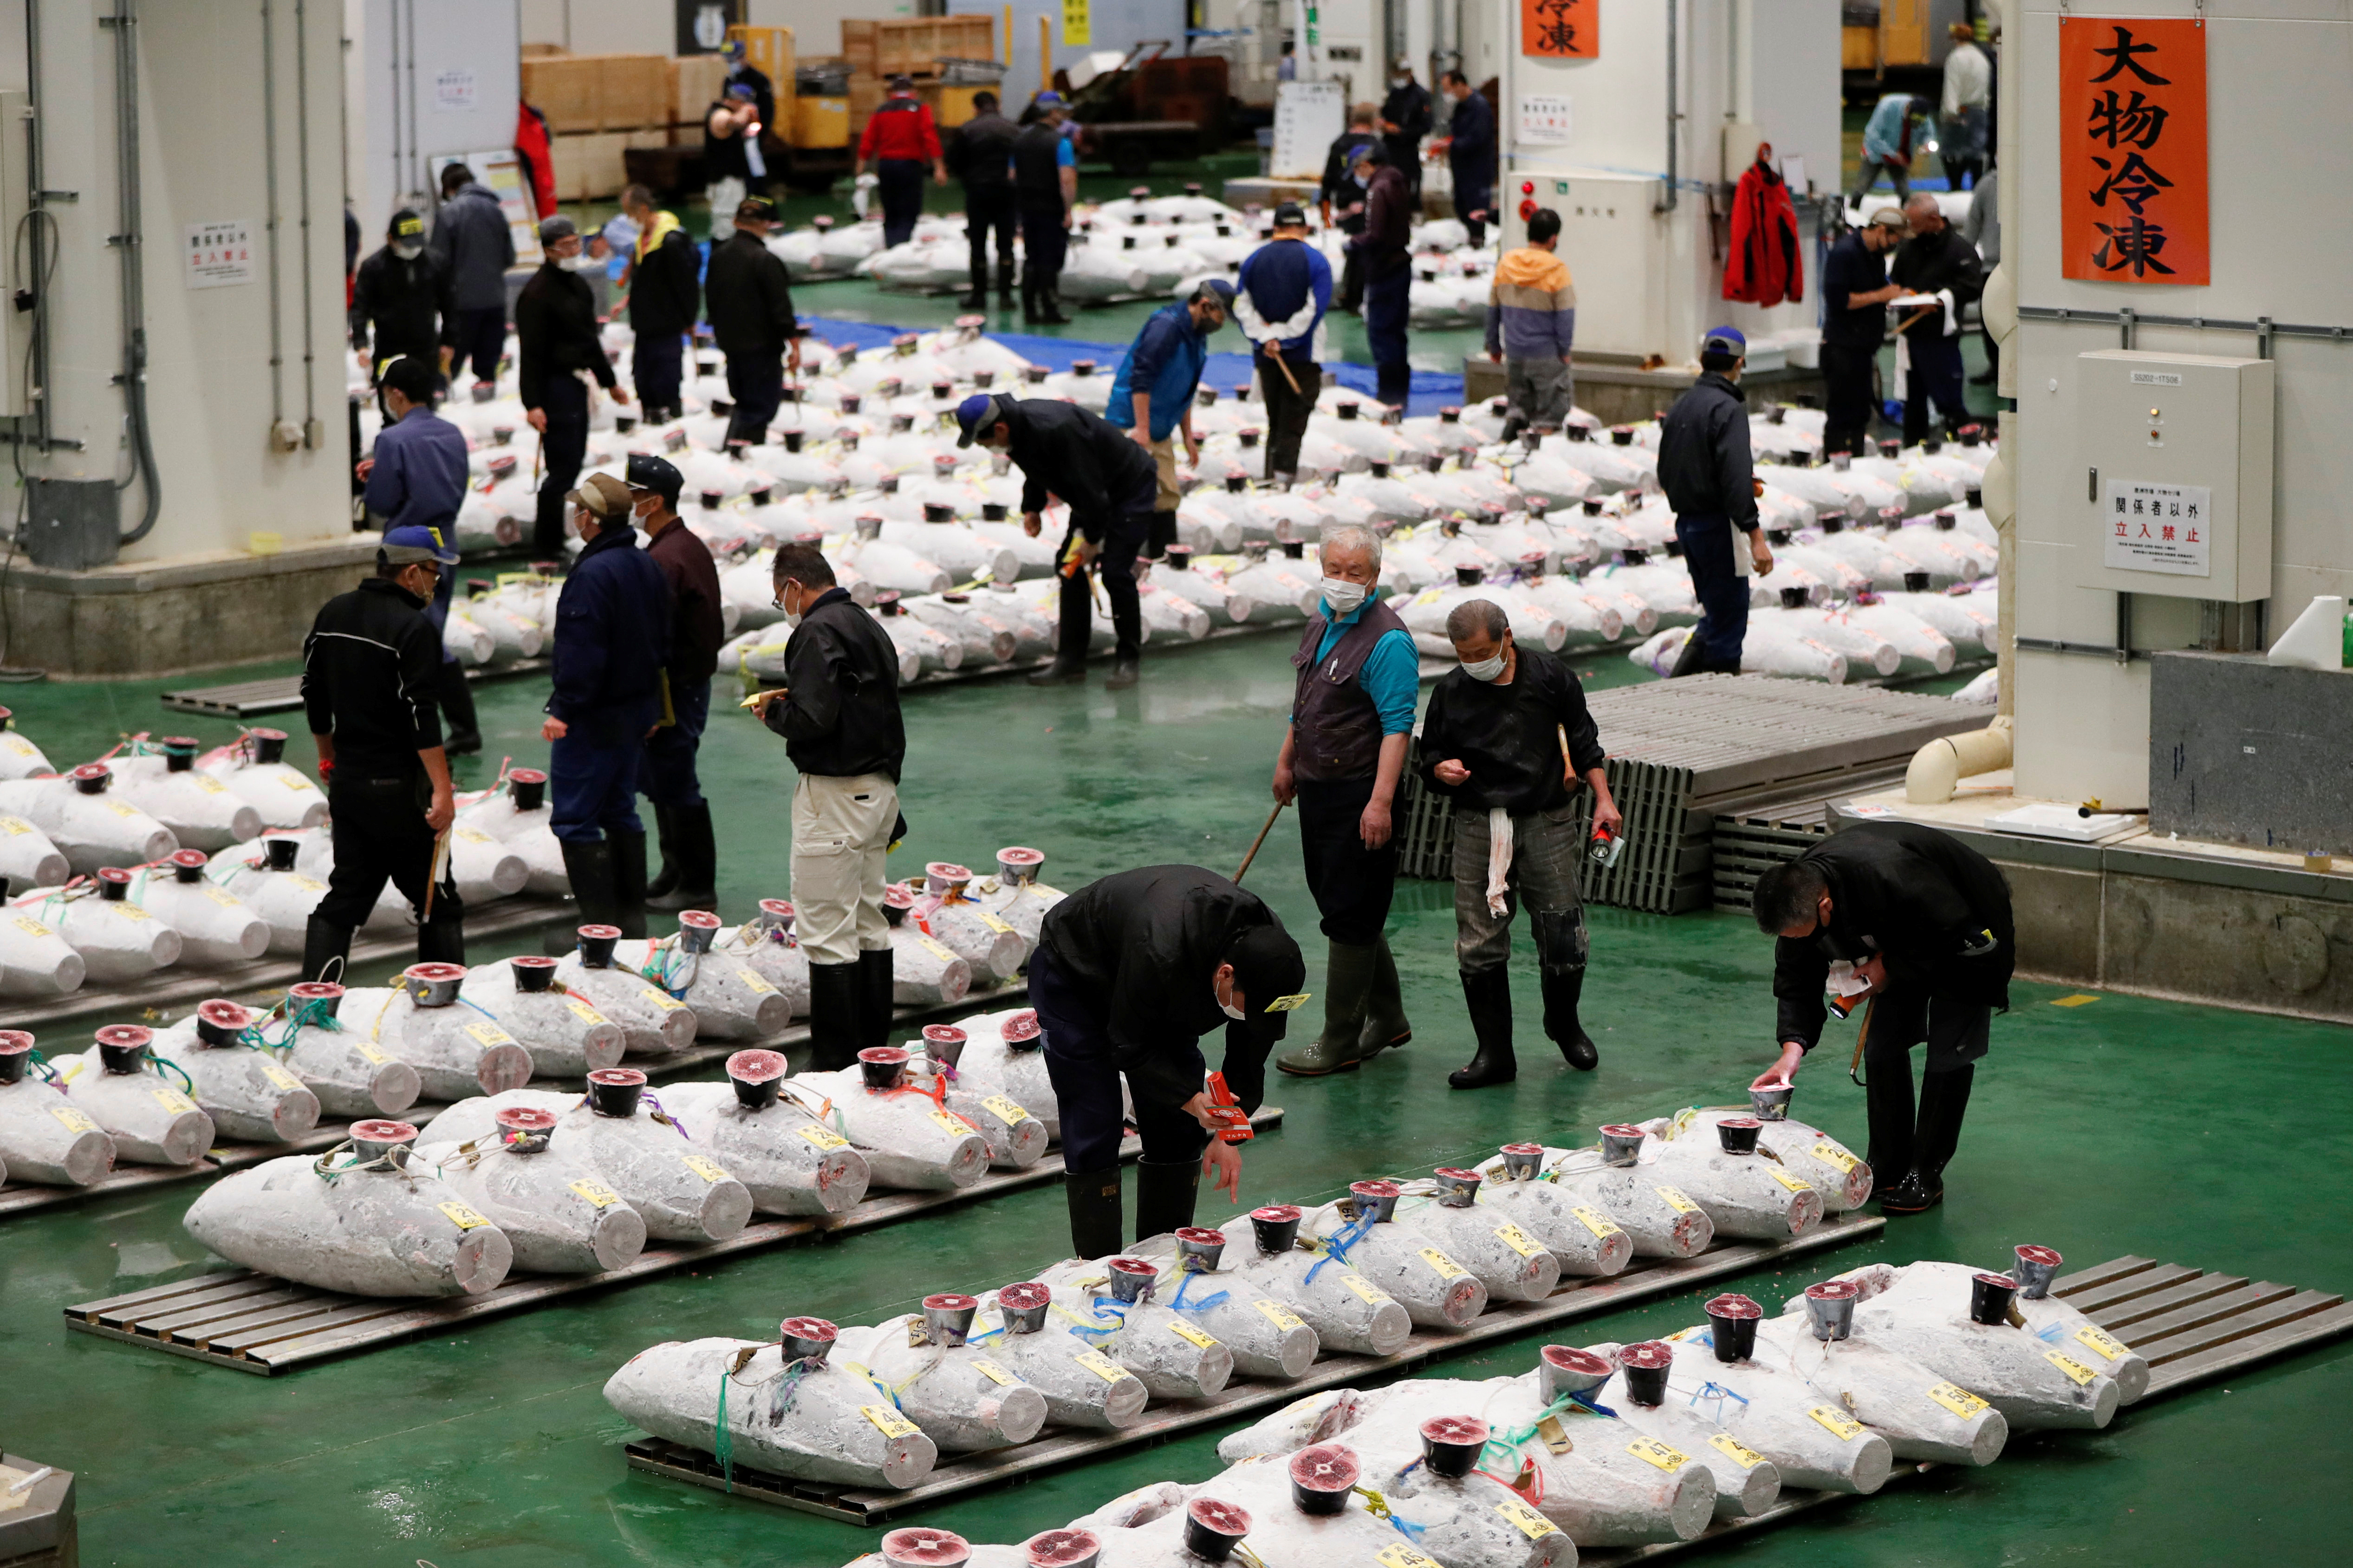 Wholesalers check the quality of frozen tuna displayed during the tuna auctions, amid the coronavirus disease (COVID-19) outbreak, at Toyosu fish market in Tokyo, Japan  August 25, 2020. Picture taken August 25, 2020.  REUTERS/Issei Kato